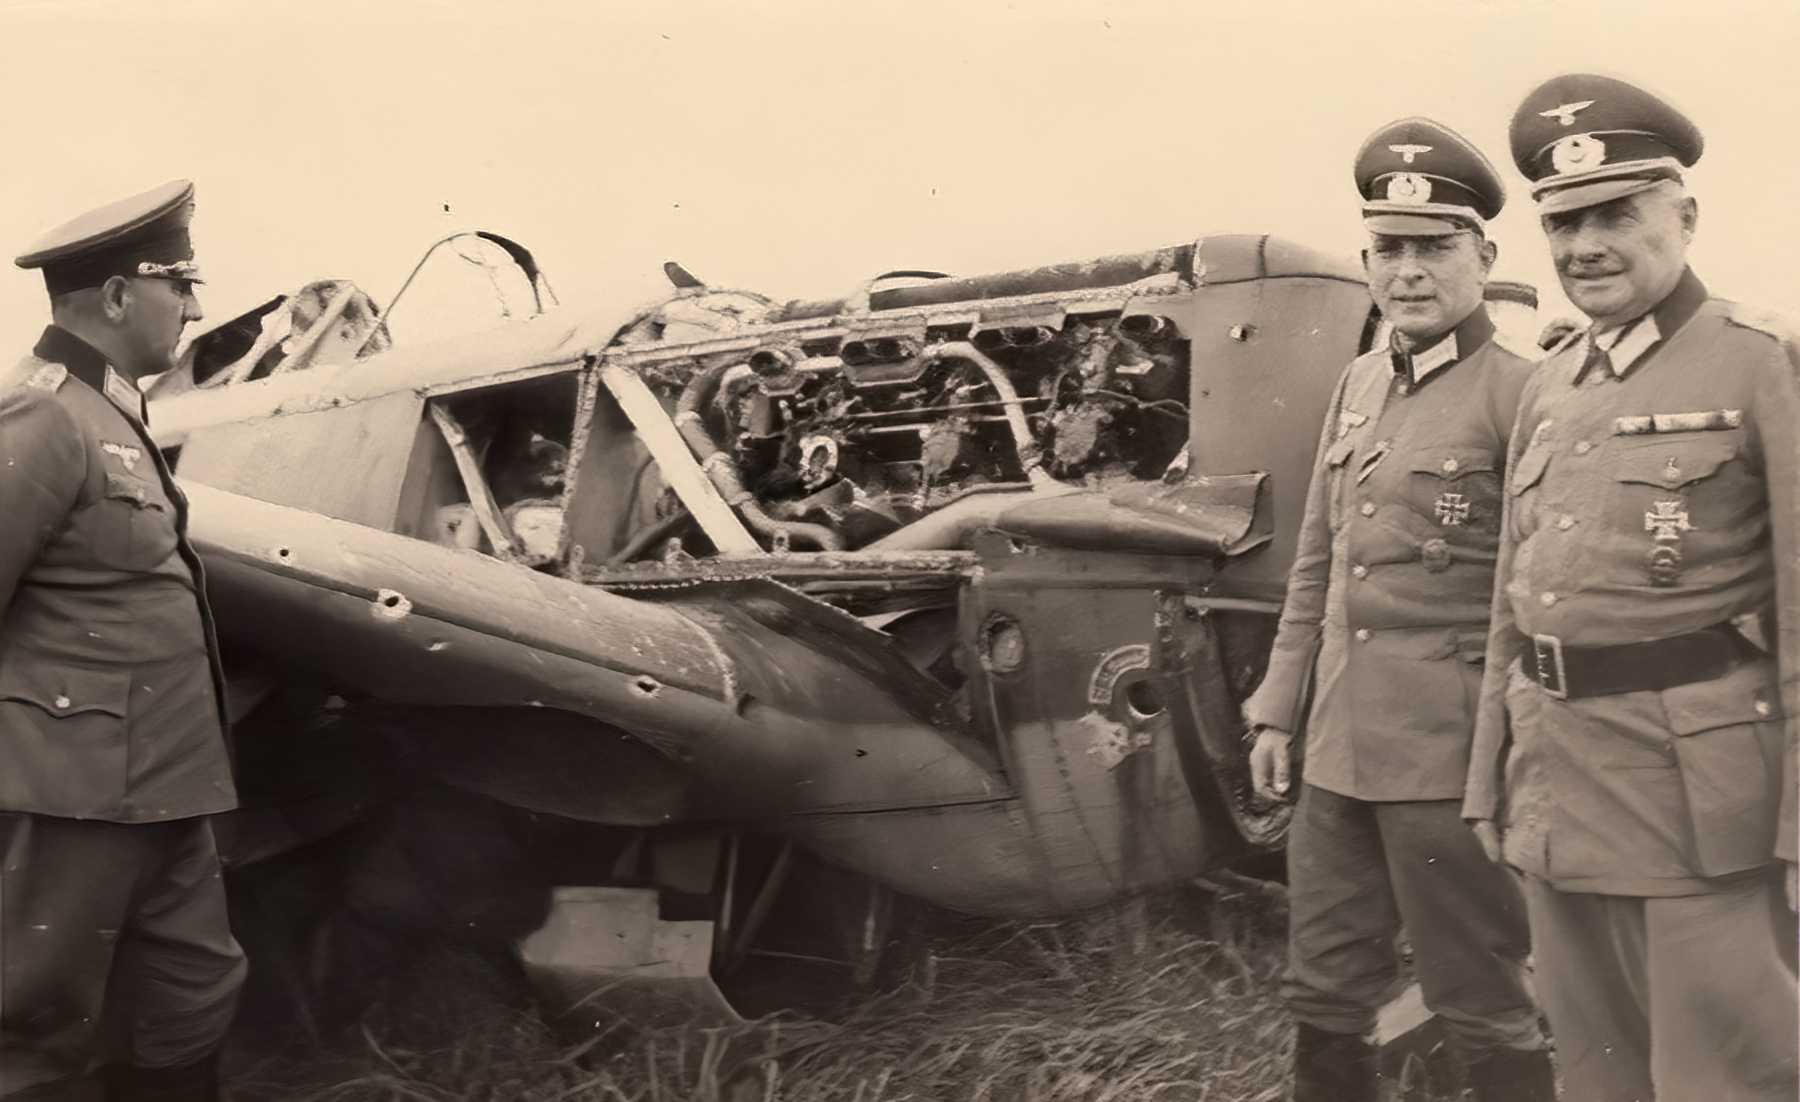 French Airforce Morane Saulnier MS 406 being inspected by German hierarchy France 1940 ebay 01